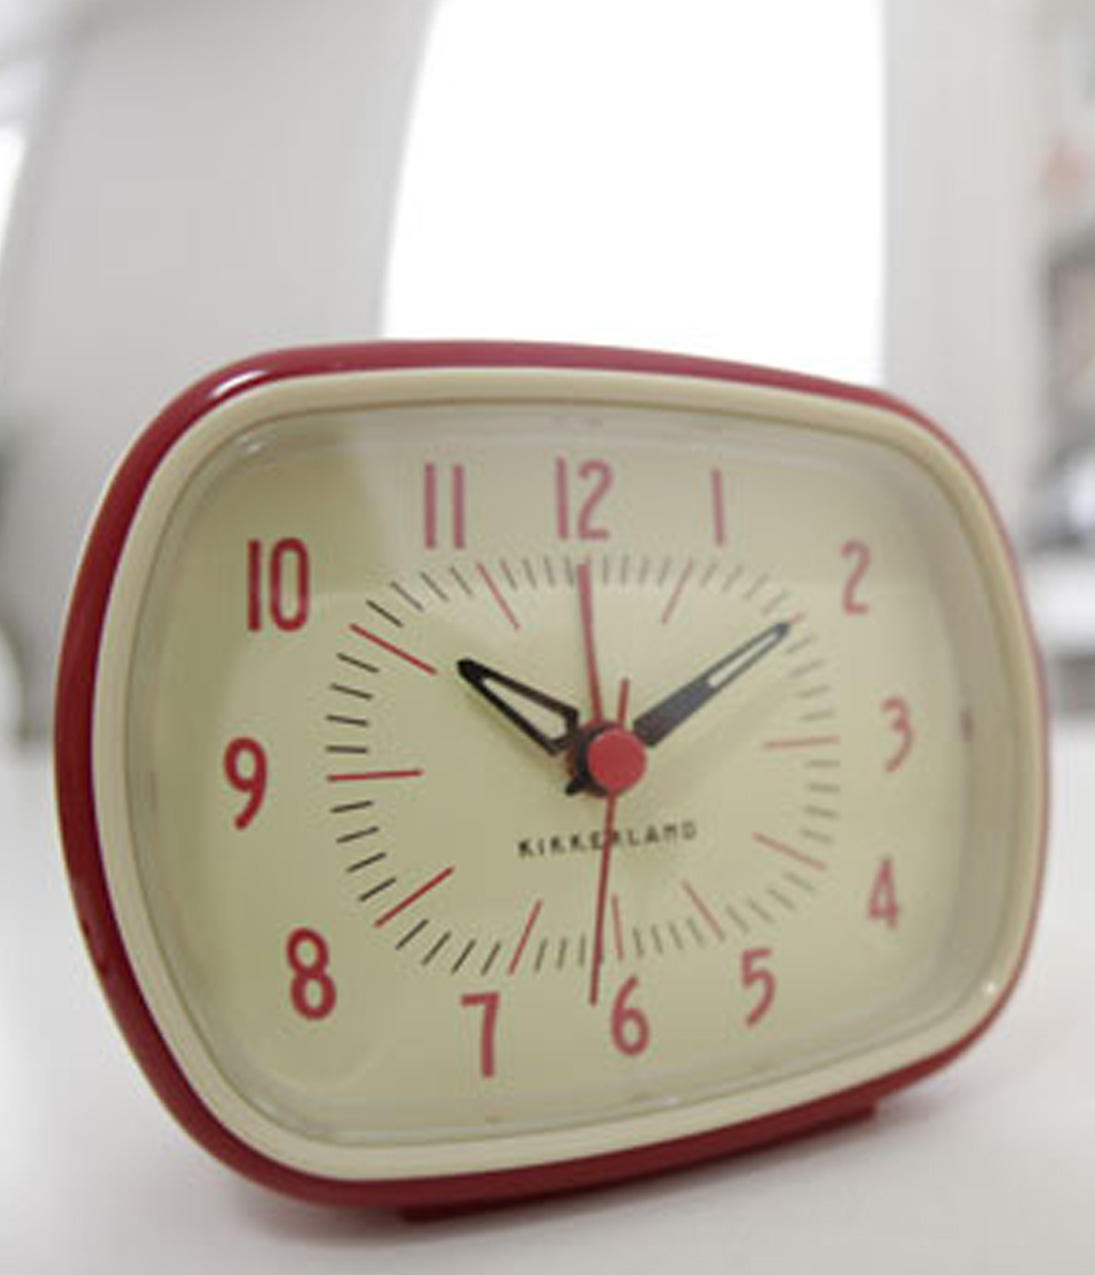 Red Retro Analog Alarm Clock from Unique Vintage | Things ...